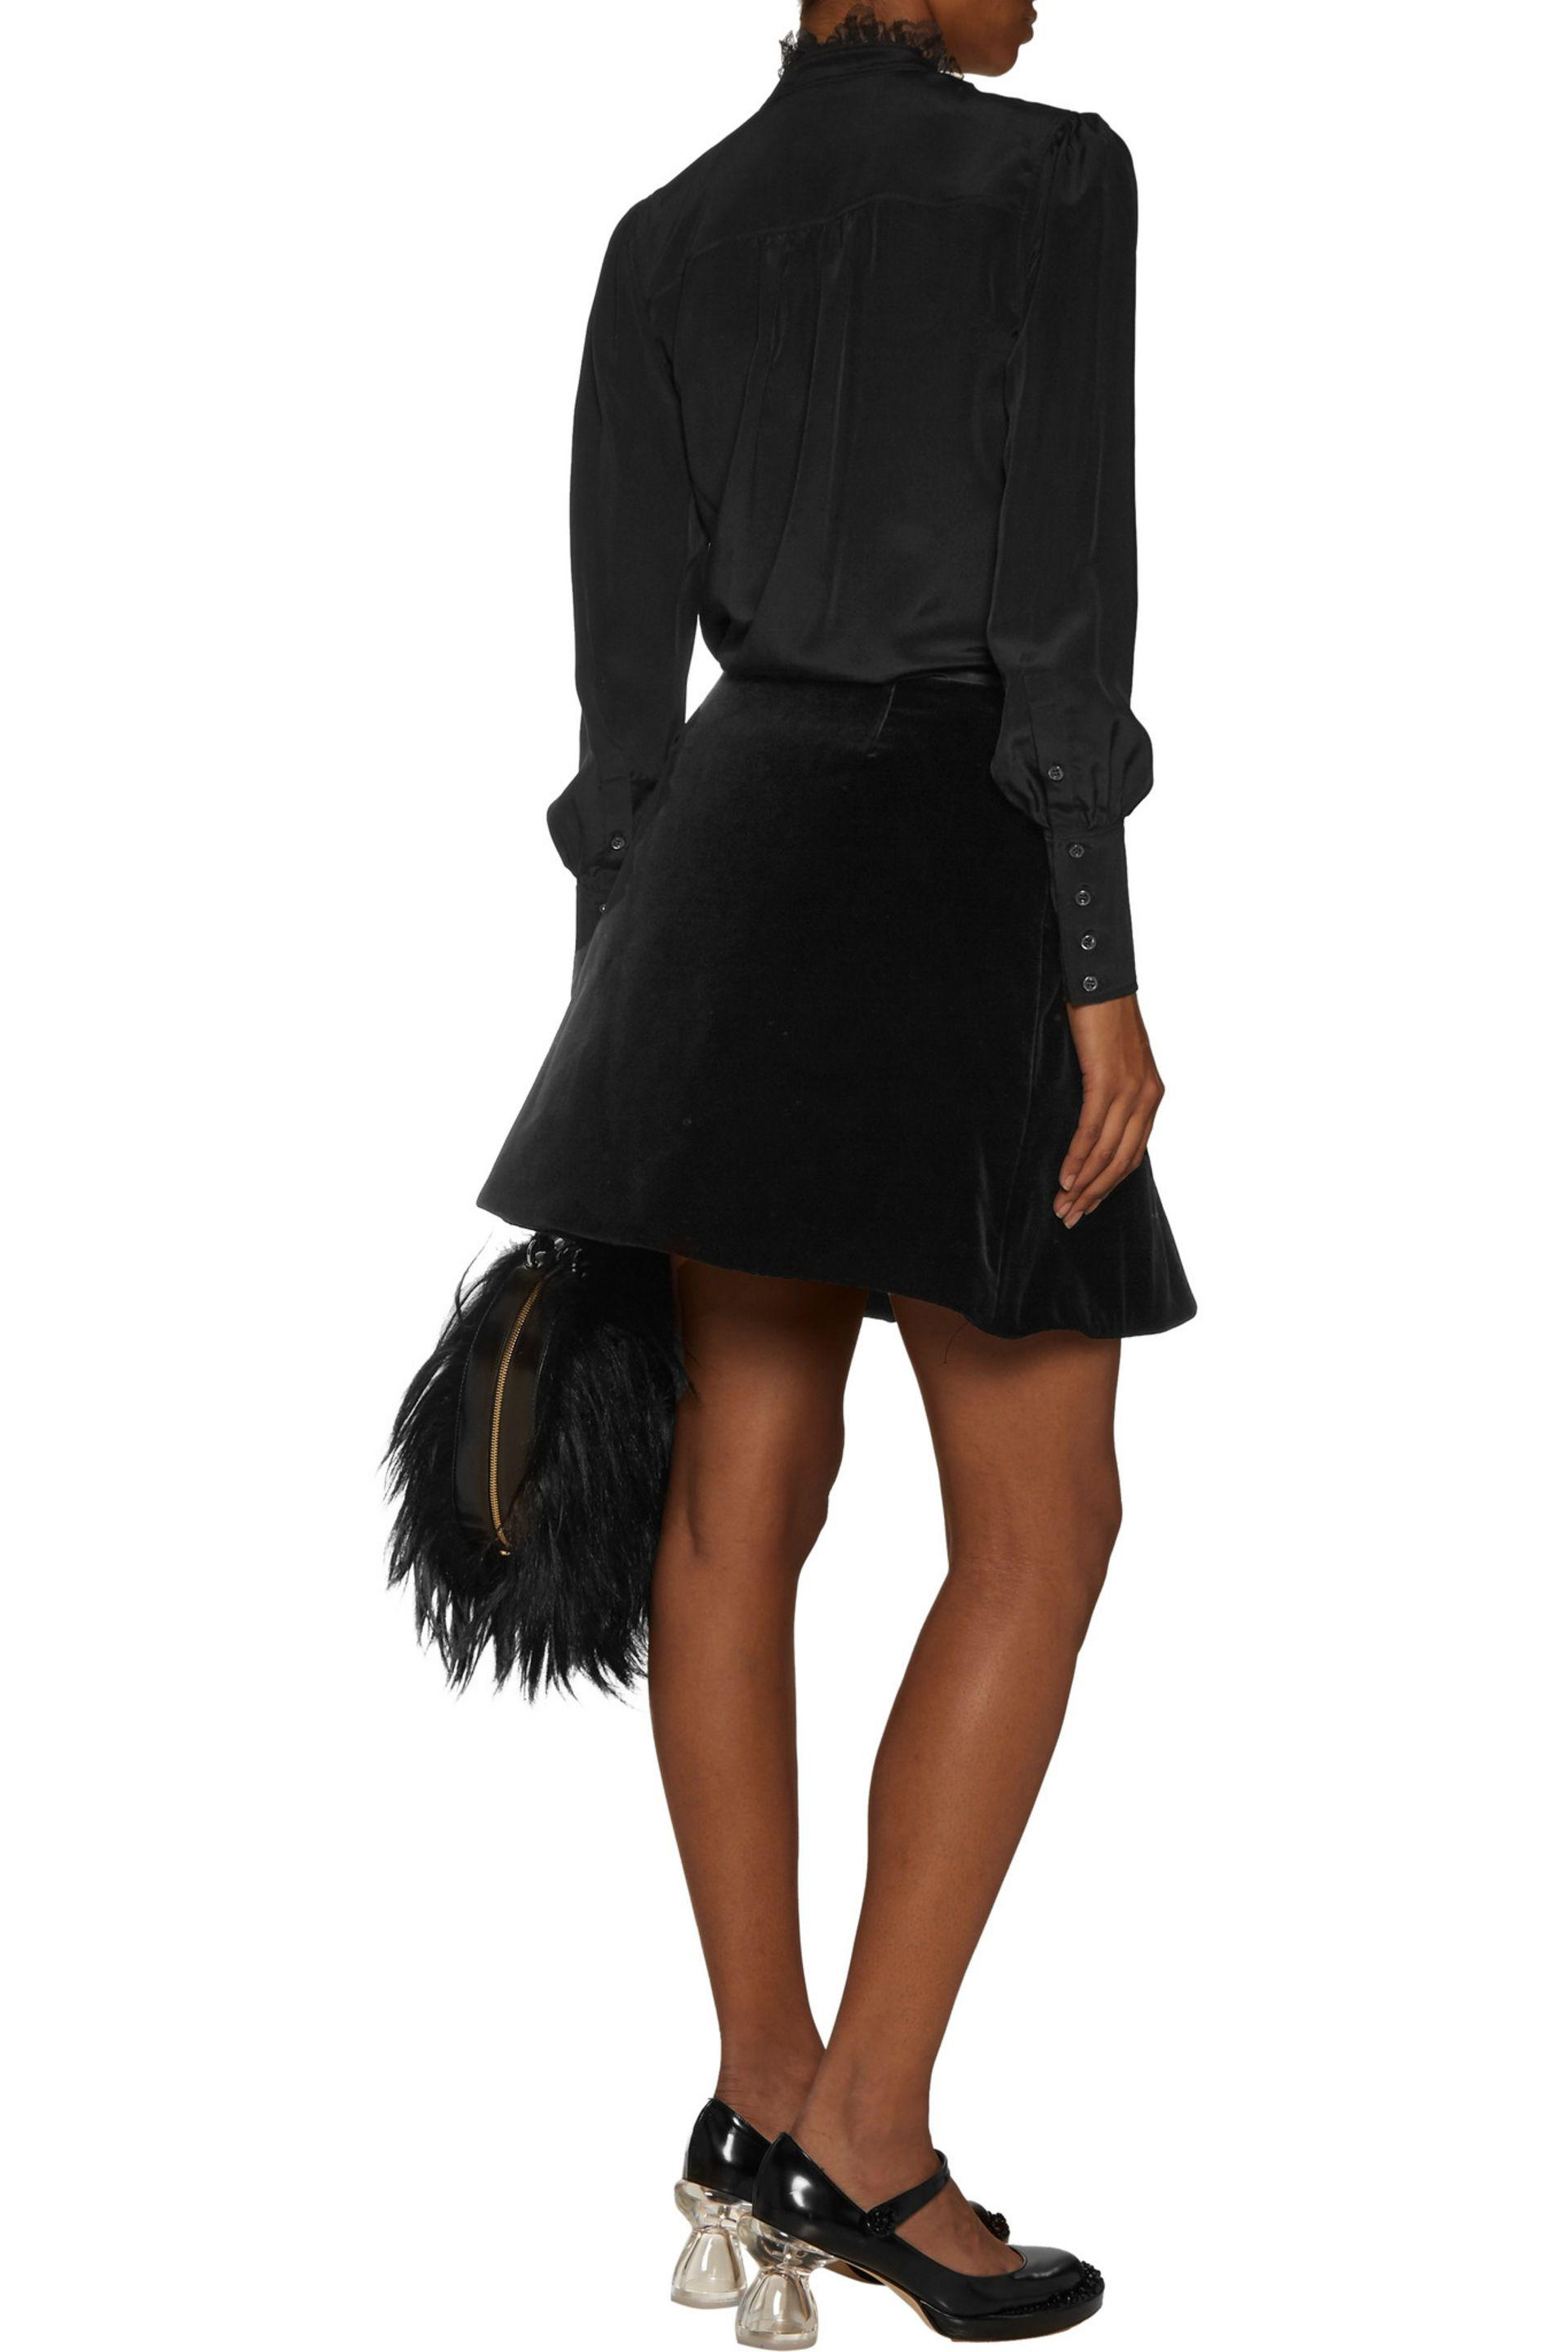 Simone Rocha - Black Wrap-effect Velvet Mini Skirt - Lyst. View Fullscreen